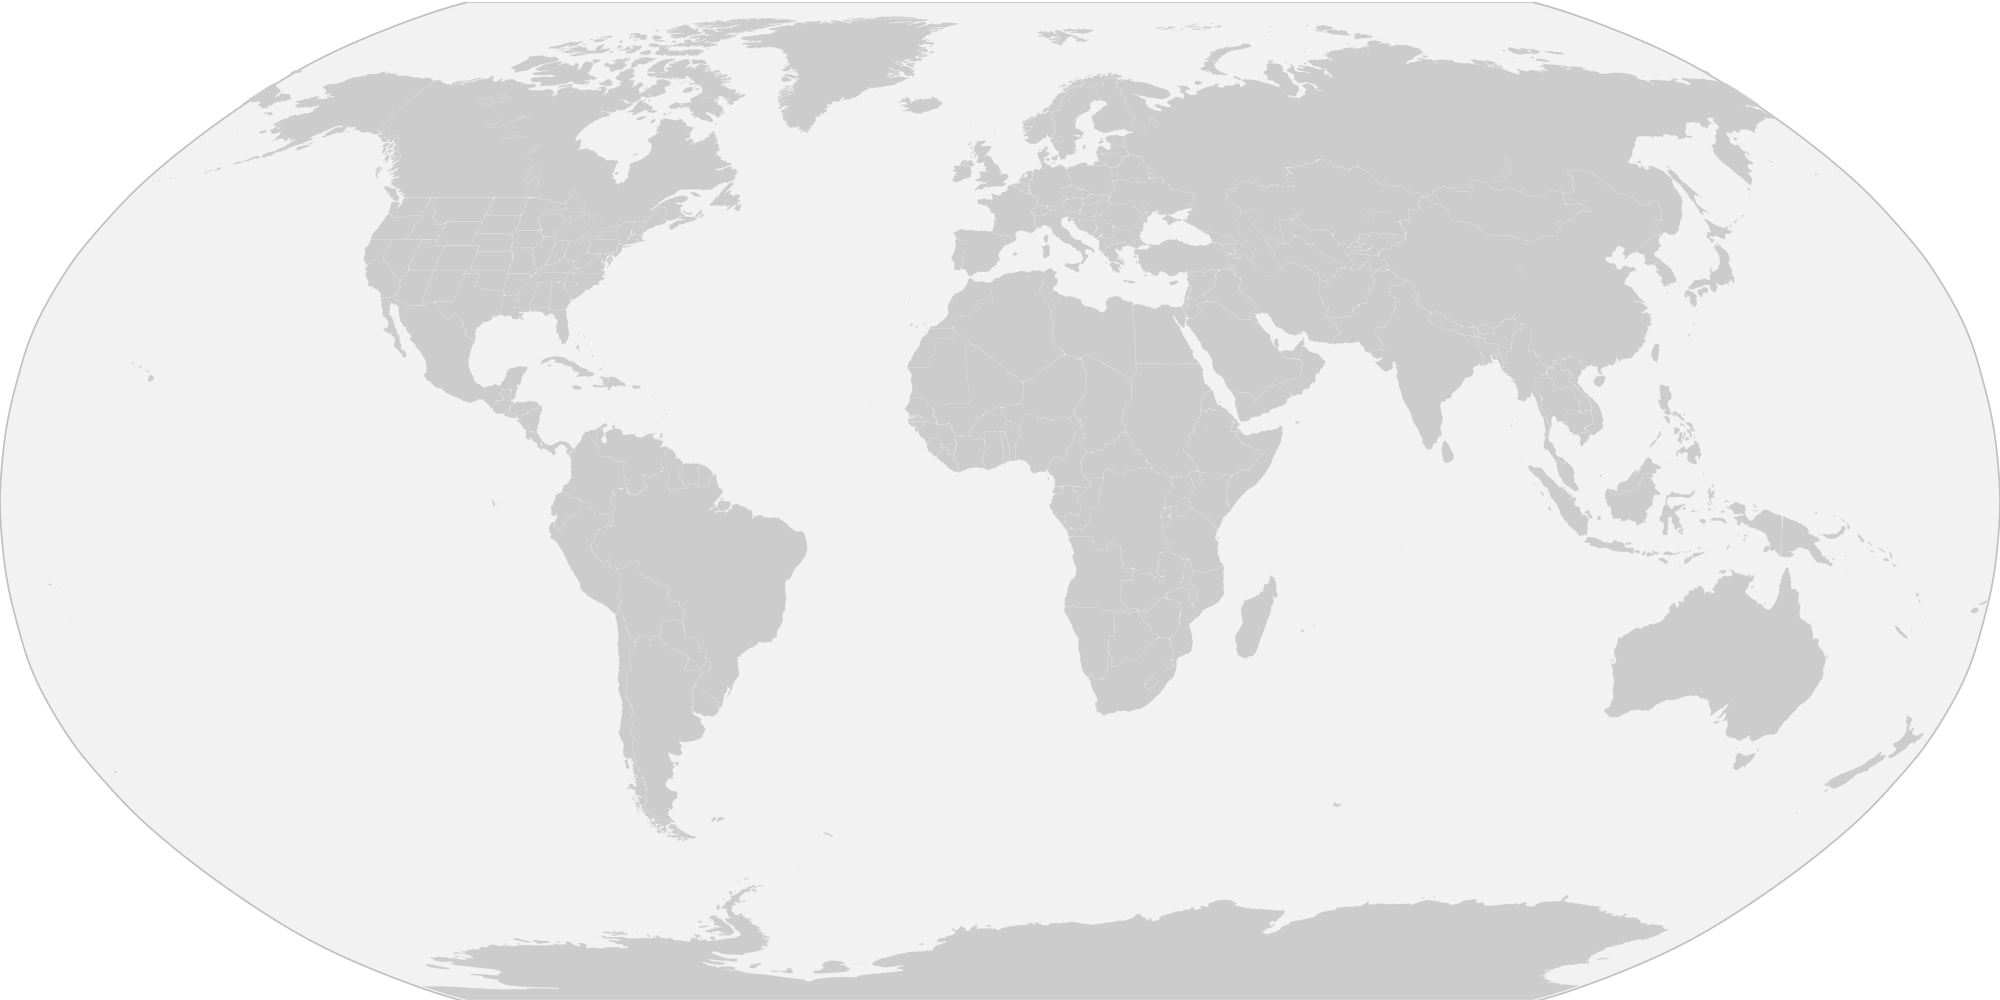 World map blank png. File with us states